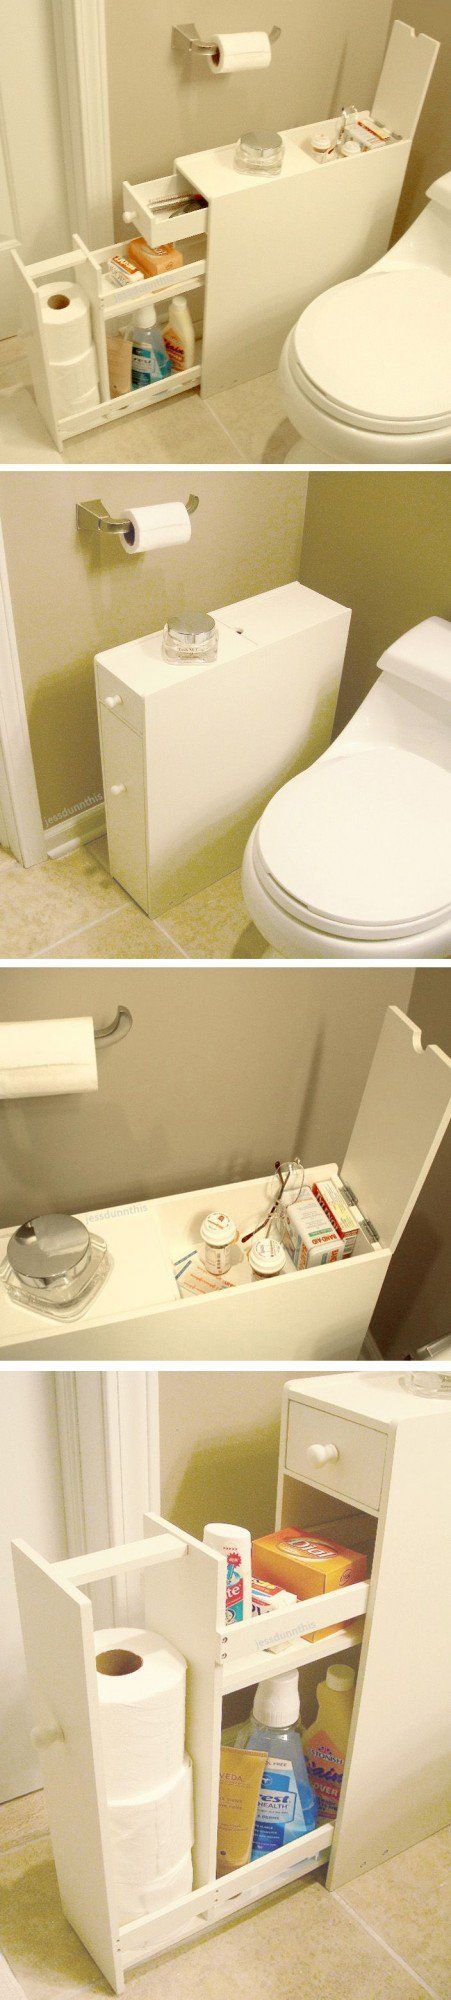 Small bathroom storage ideas - Top 25 The Best Diy Small Bathroom Storage Ideas That Will Fascinate You